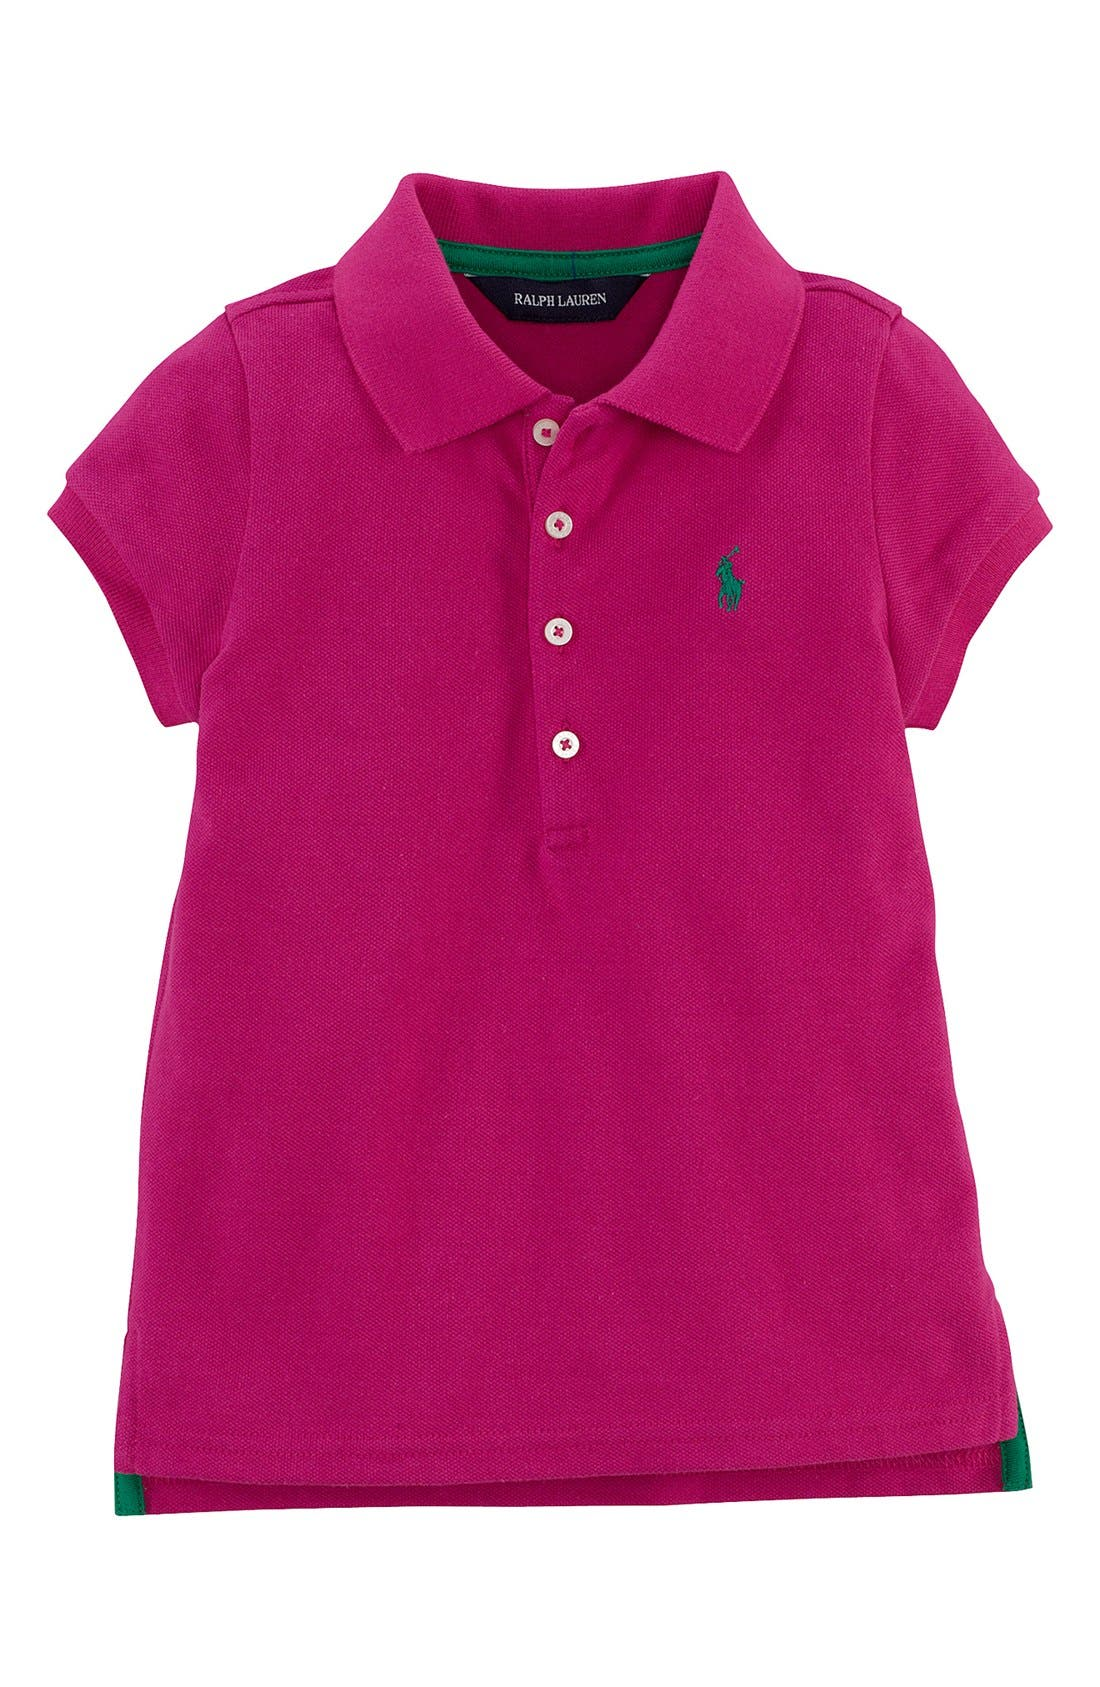 Main Image - Ralph Lauren Polo Shirt (Toddler Girls)